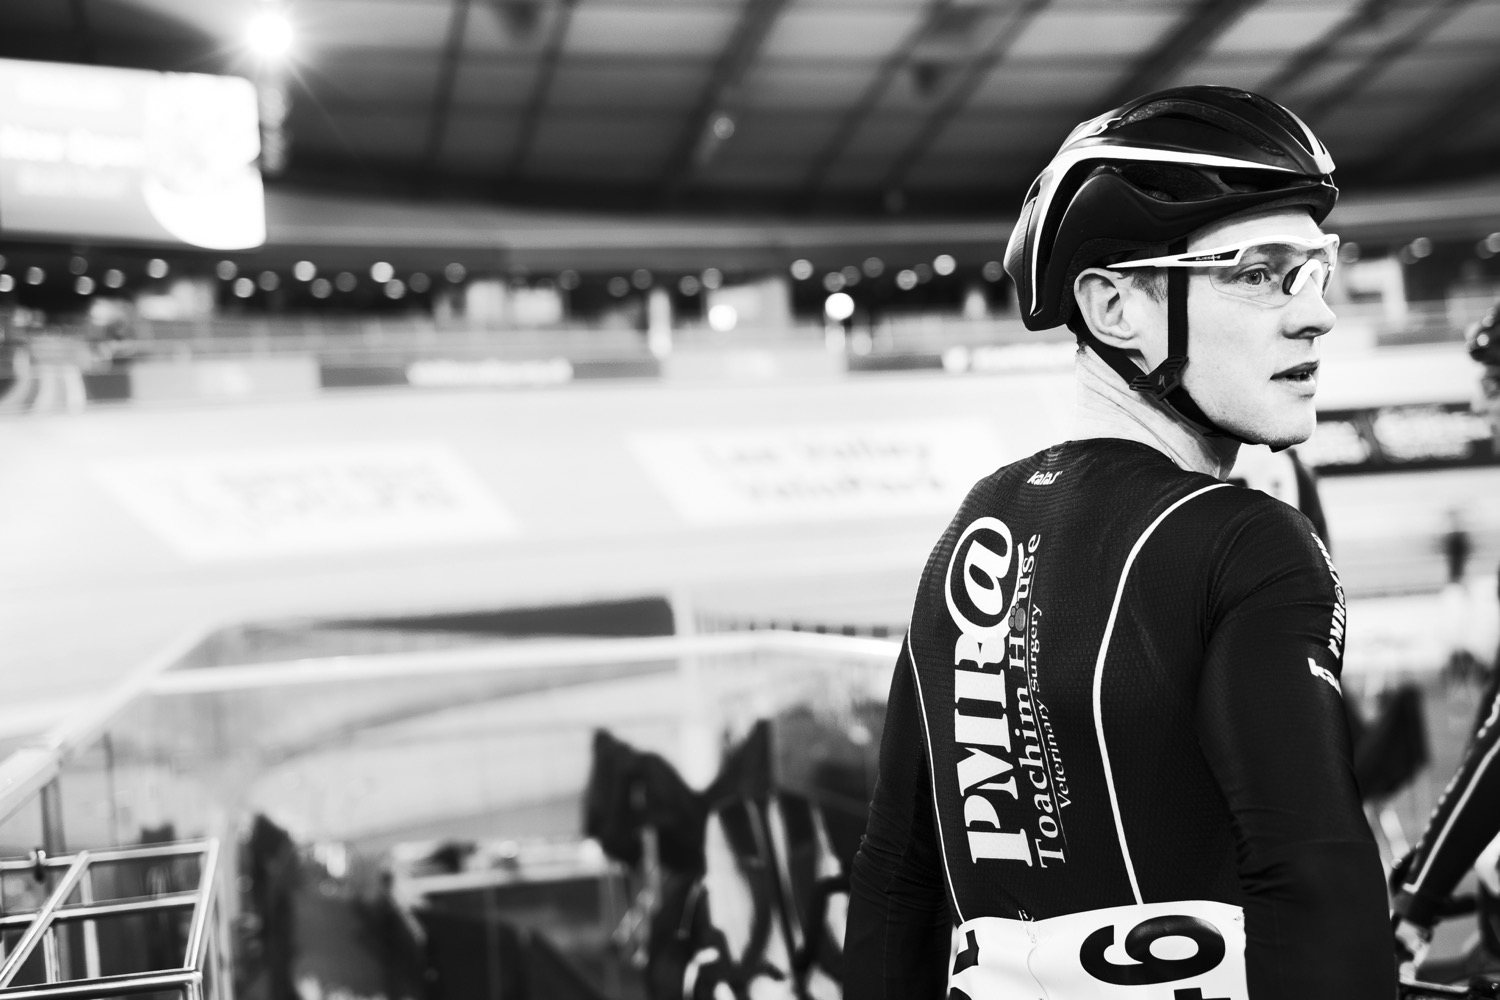 A track cyclist waiting to race at the London Olympic velodrome.